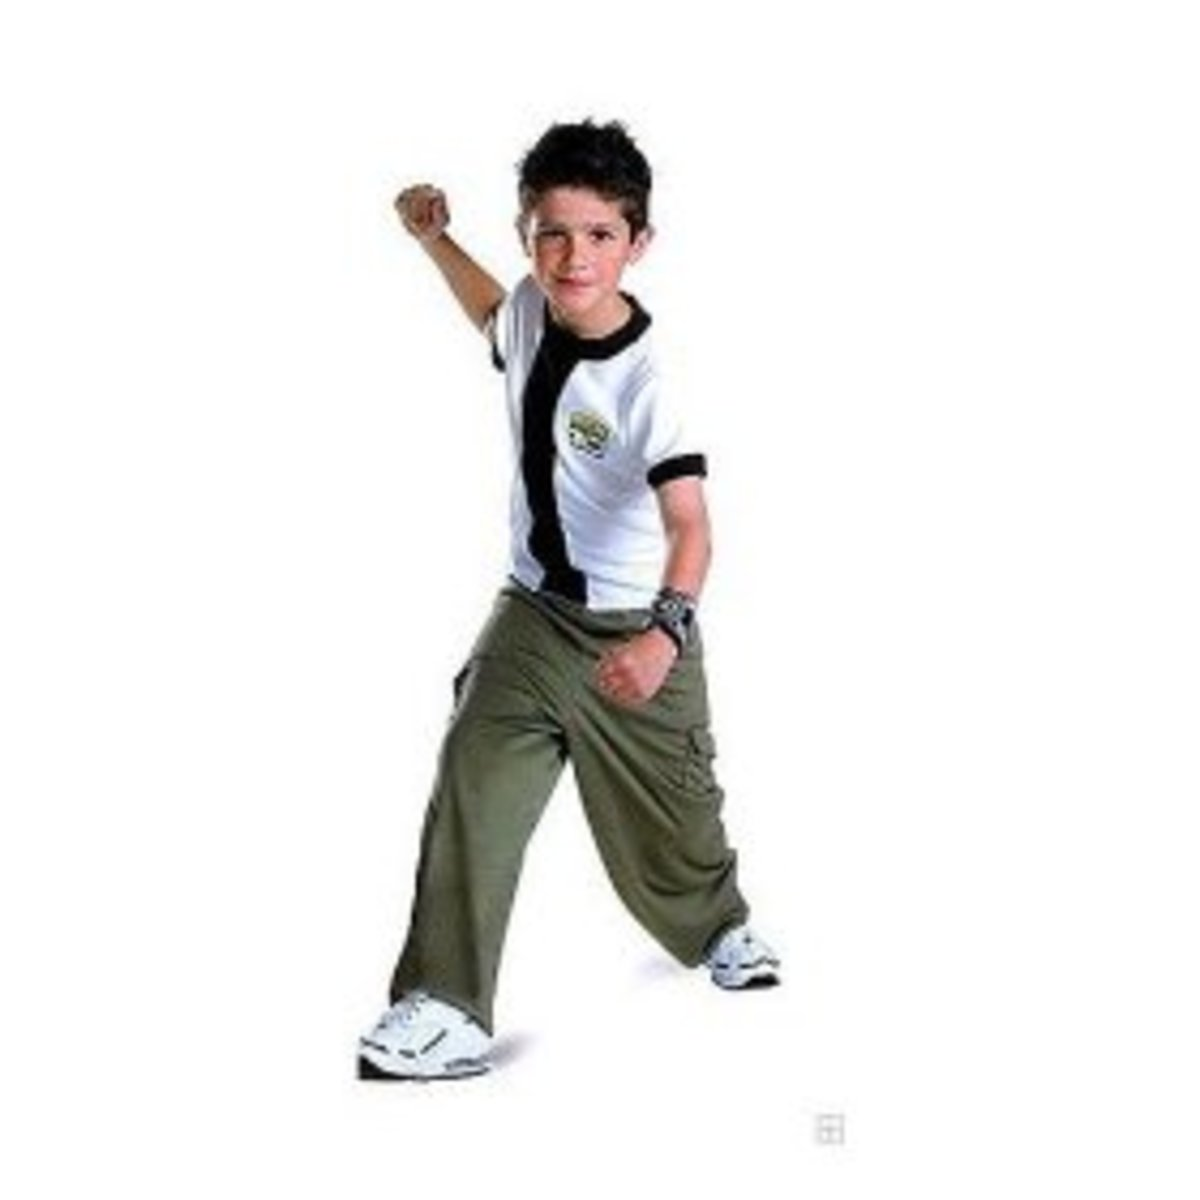 The Popular Ben10 costume at number 4